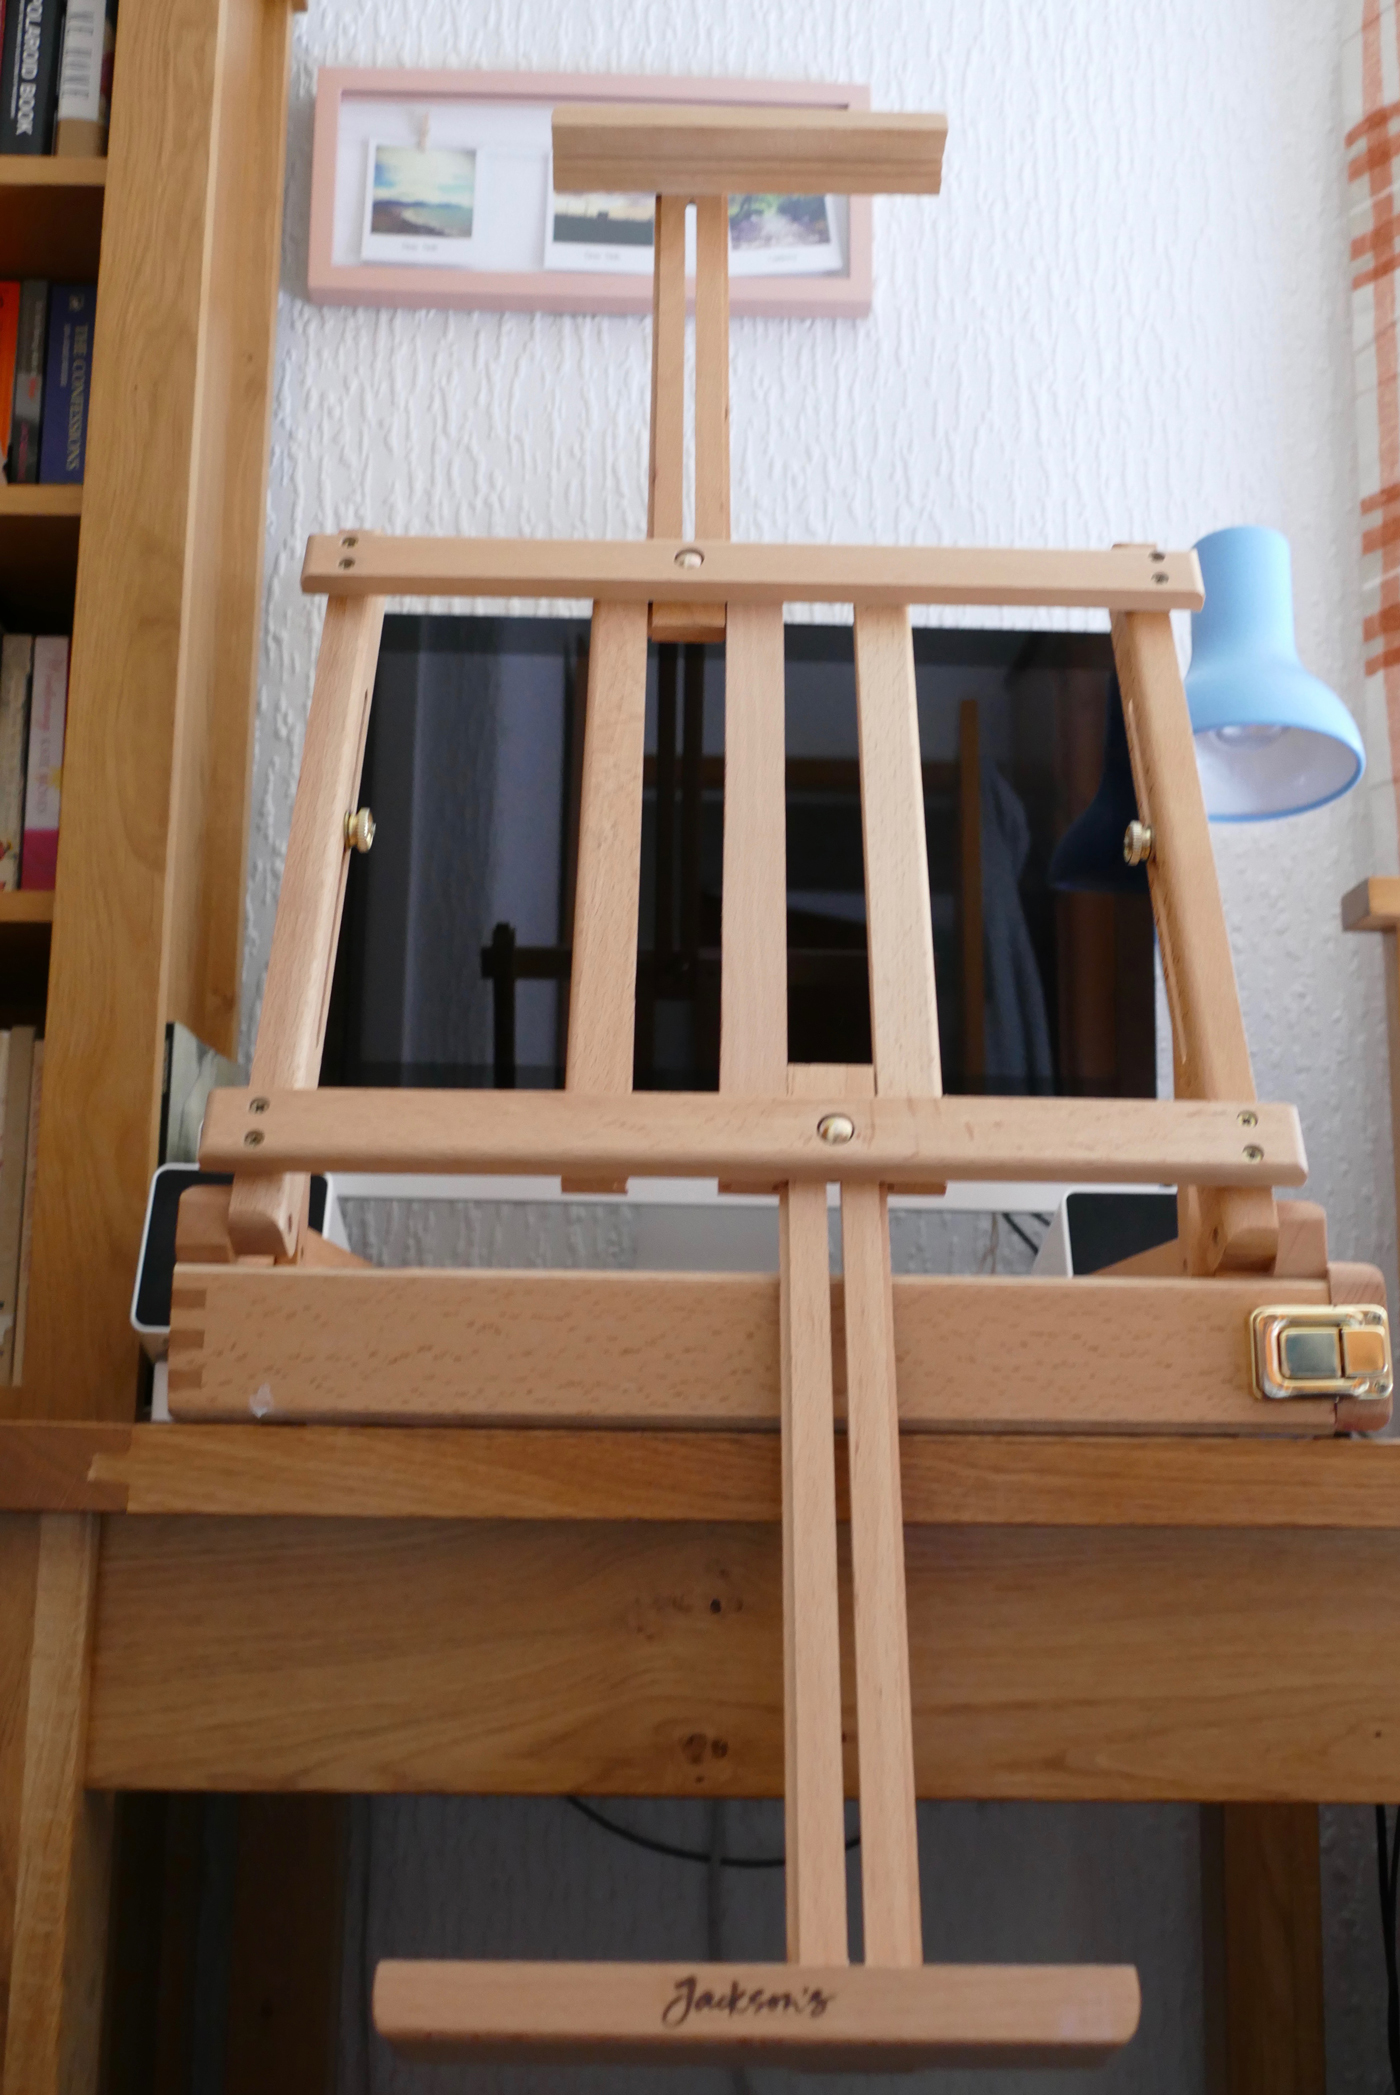 Changing the length of the support so that the Jackson's Wentworth Easel can hold a larger canvas